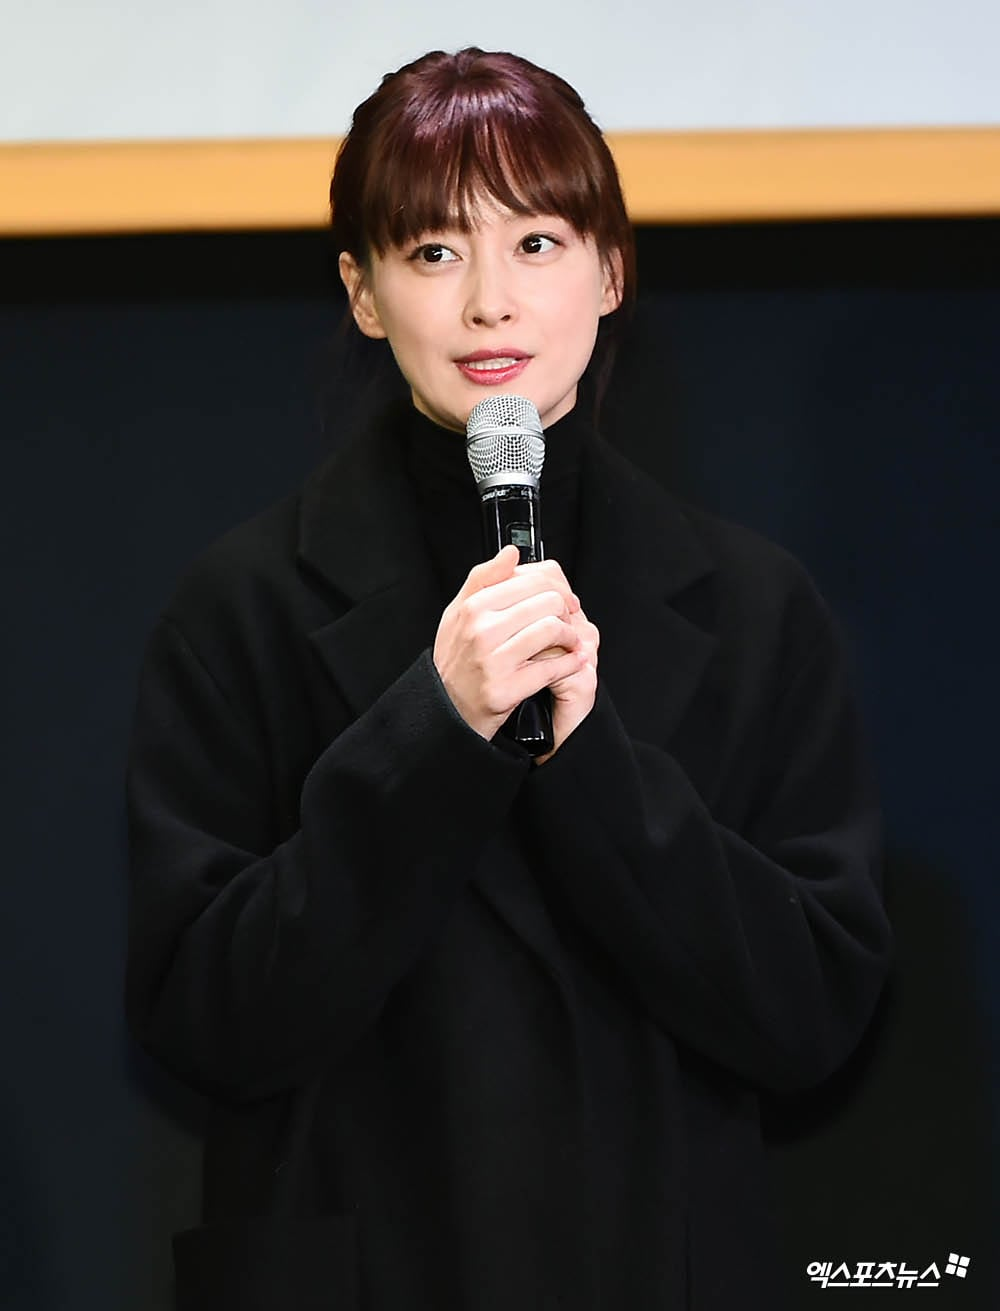 https://0.soompi.io/wp-content/uploads/2019/11/14193413/Lee-Na-Young-XPN.jpg